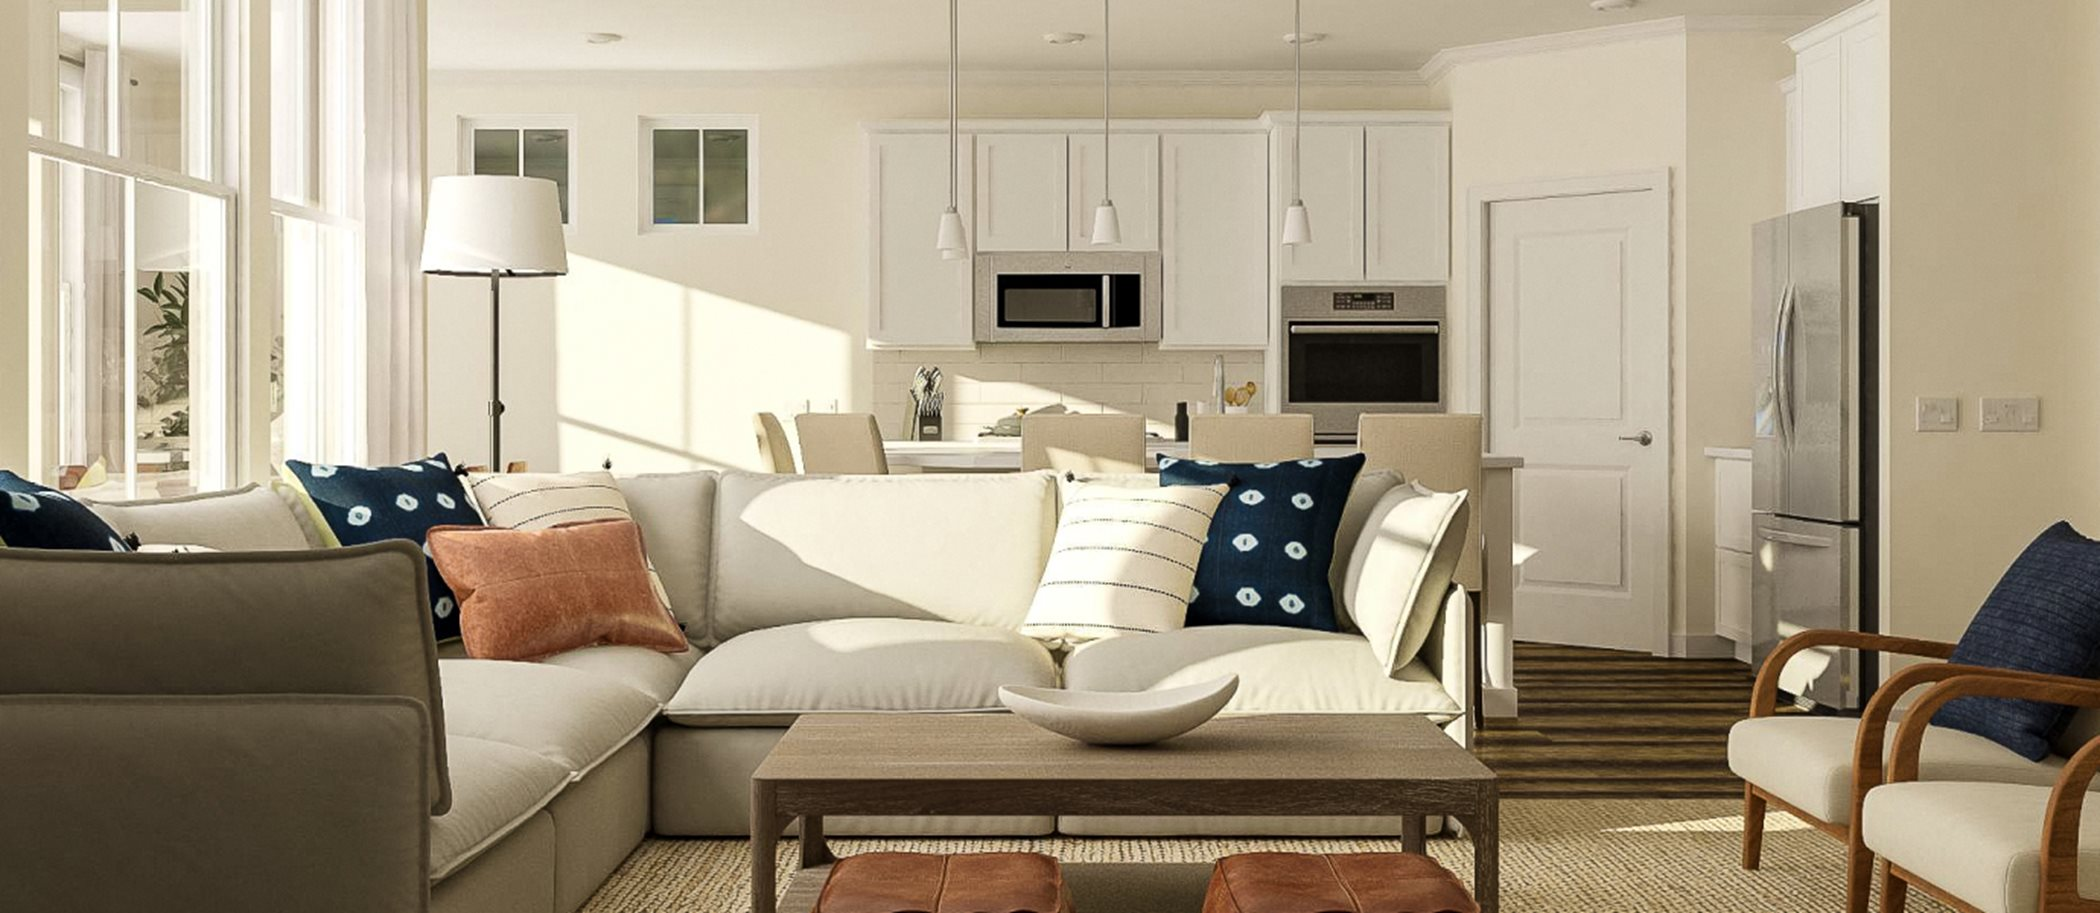 Inspiration The Heritage Collection Hamilton Living Room